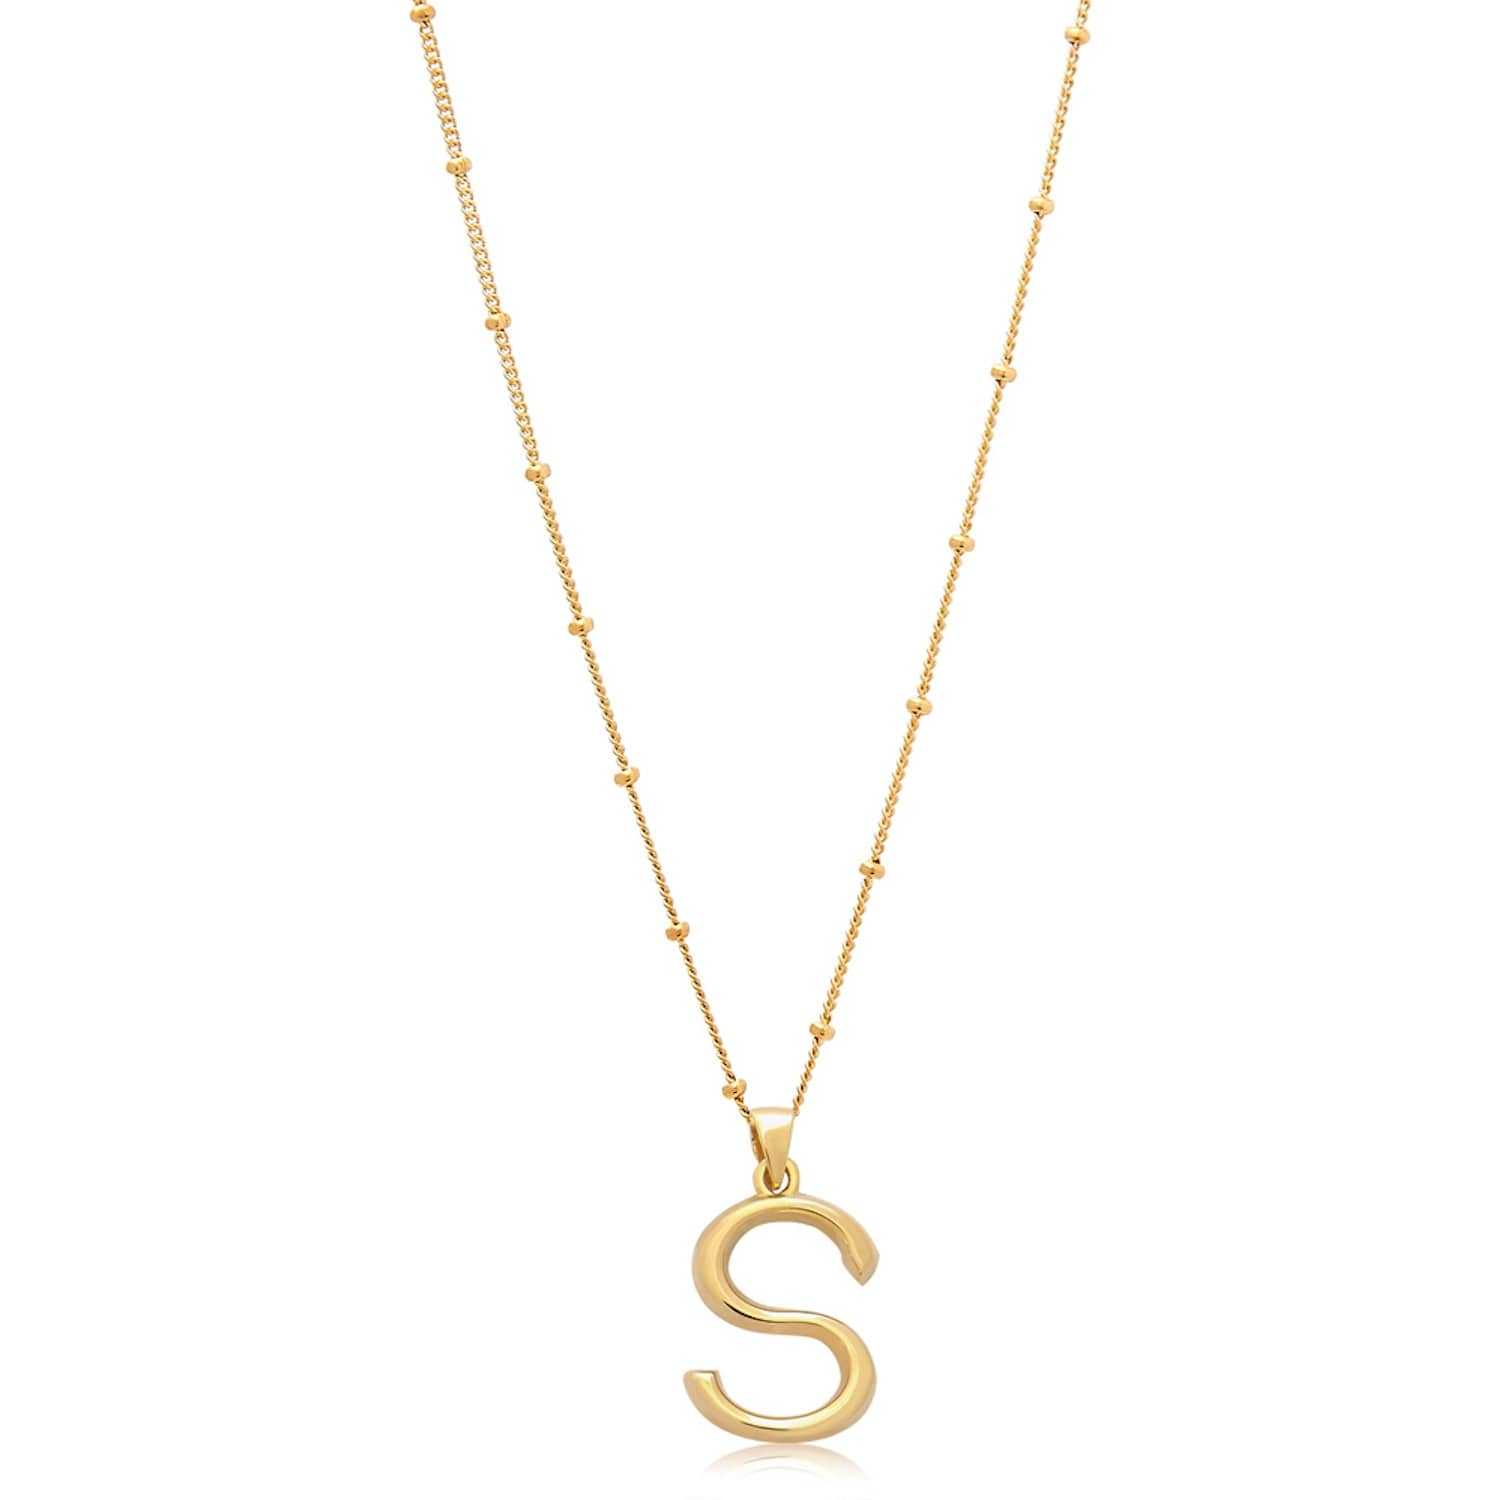 product symbol necklace of gold pendant layering family meaningful adinkra hope